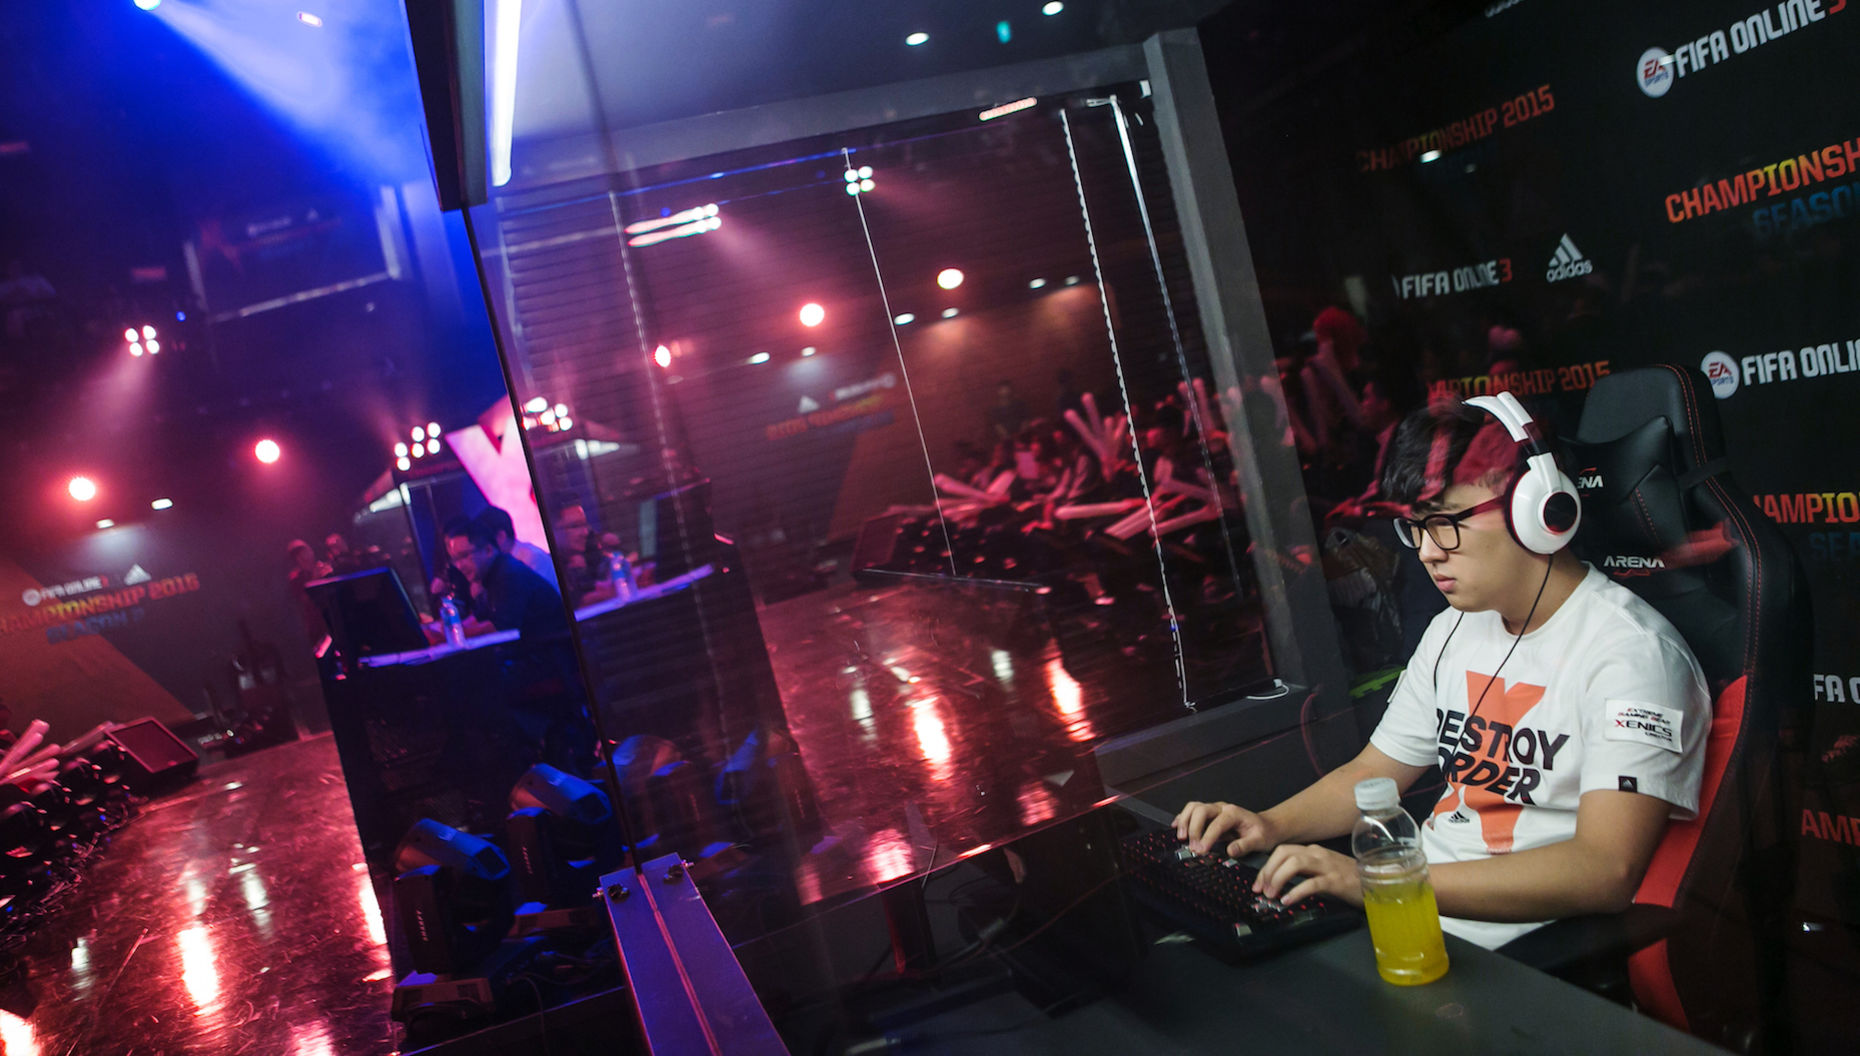 A professional videogamer at a live championship in South Korea. Photo by Bloomberg.